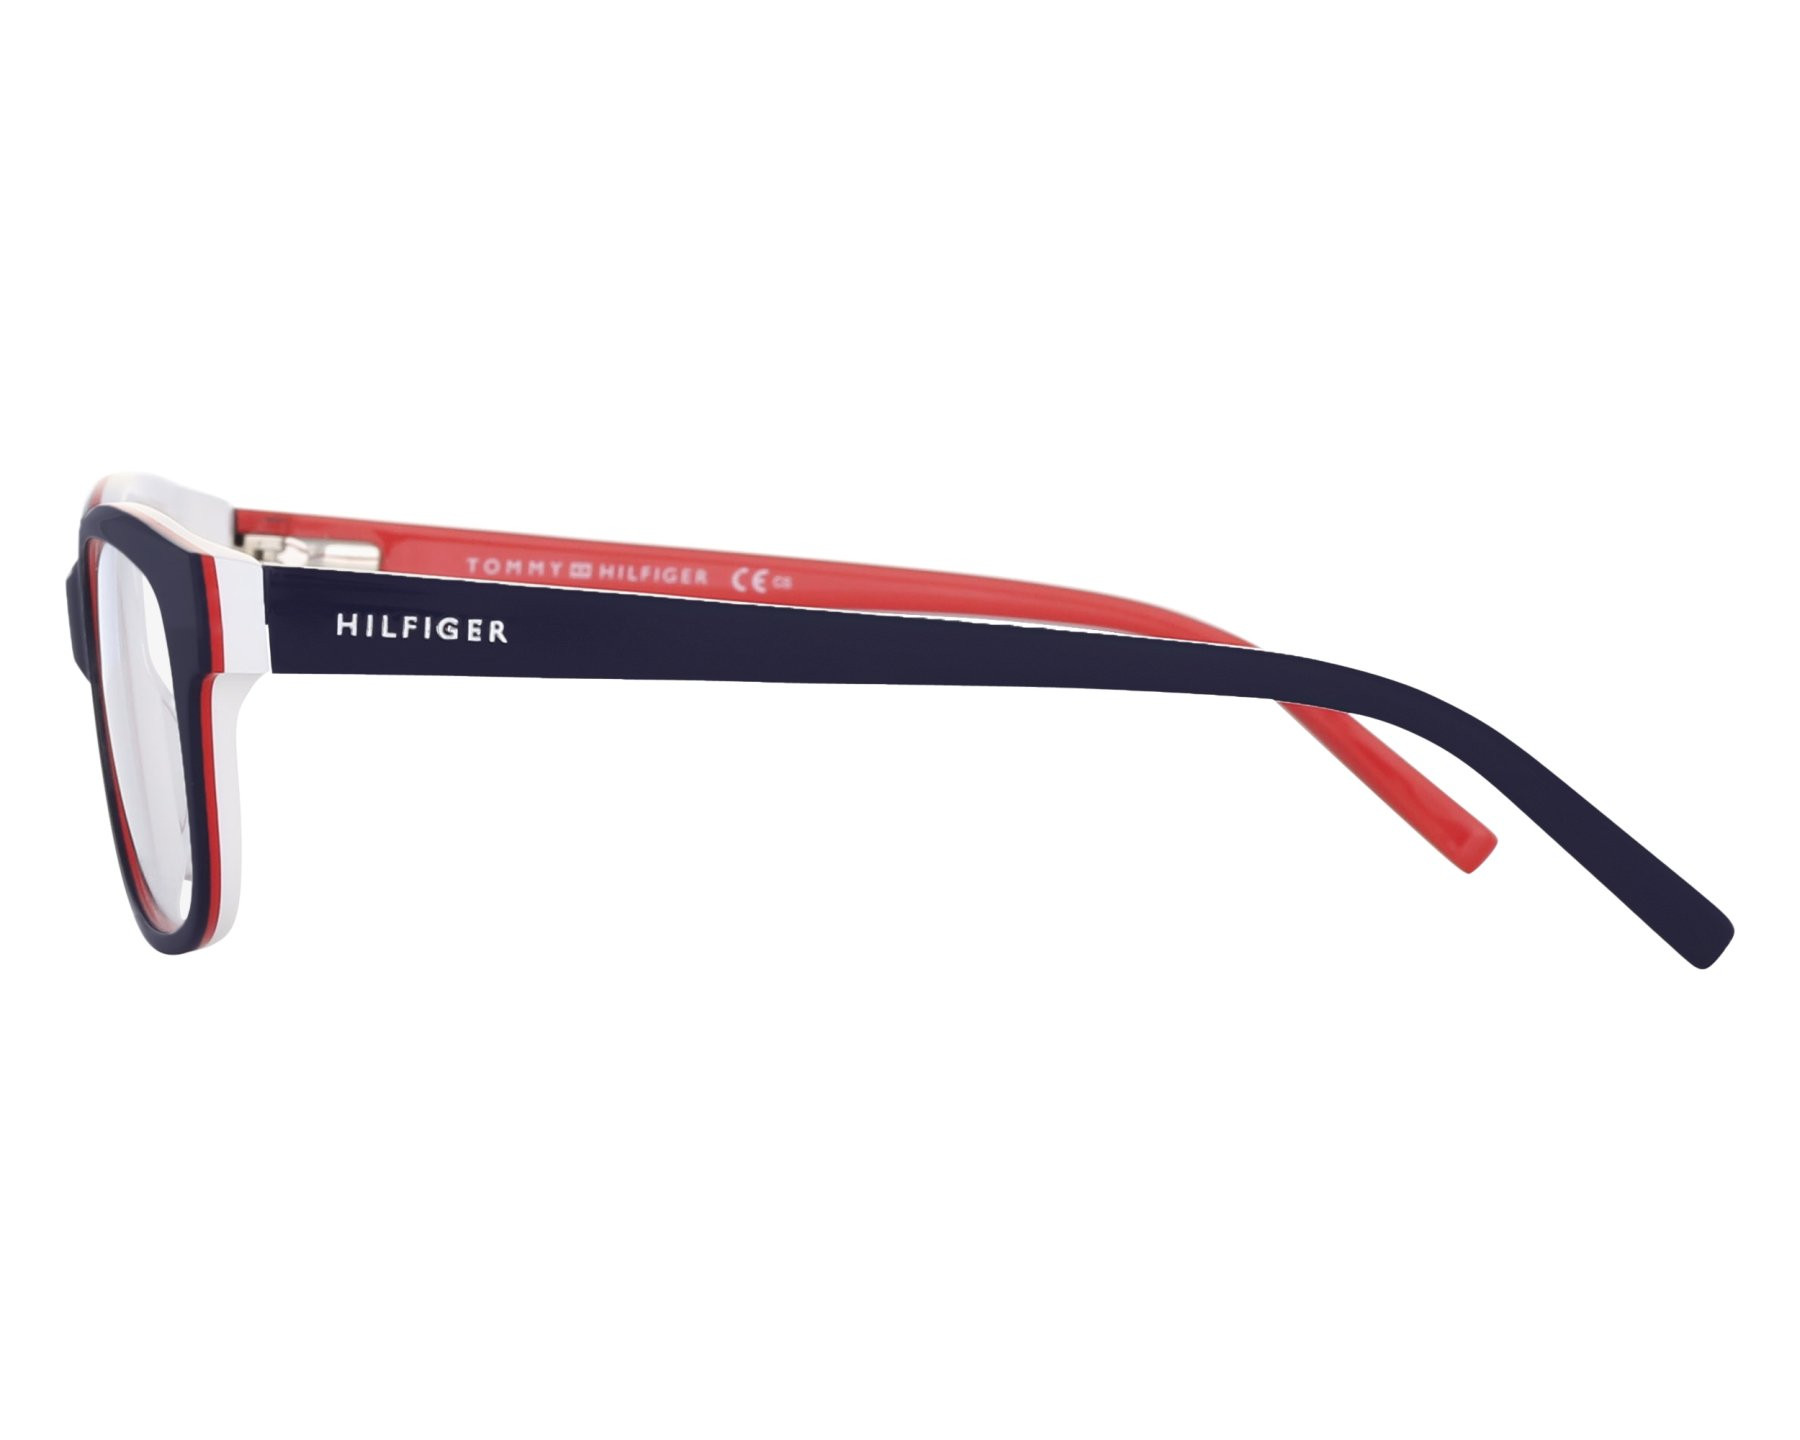 eyeglasses Tommy Hilfiger TH-1017 UNN - Blue Red front view 27539b61e77